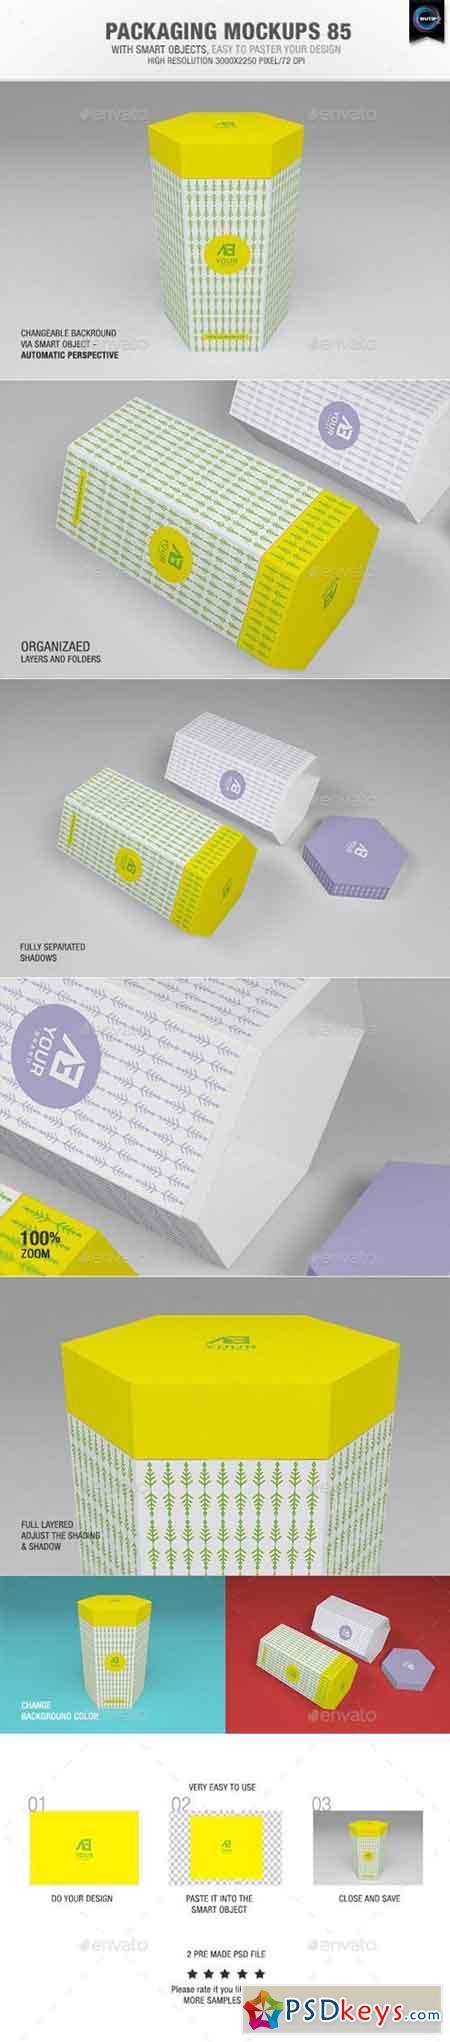 Packaging Mock-ups 85 10315406